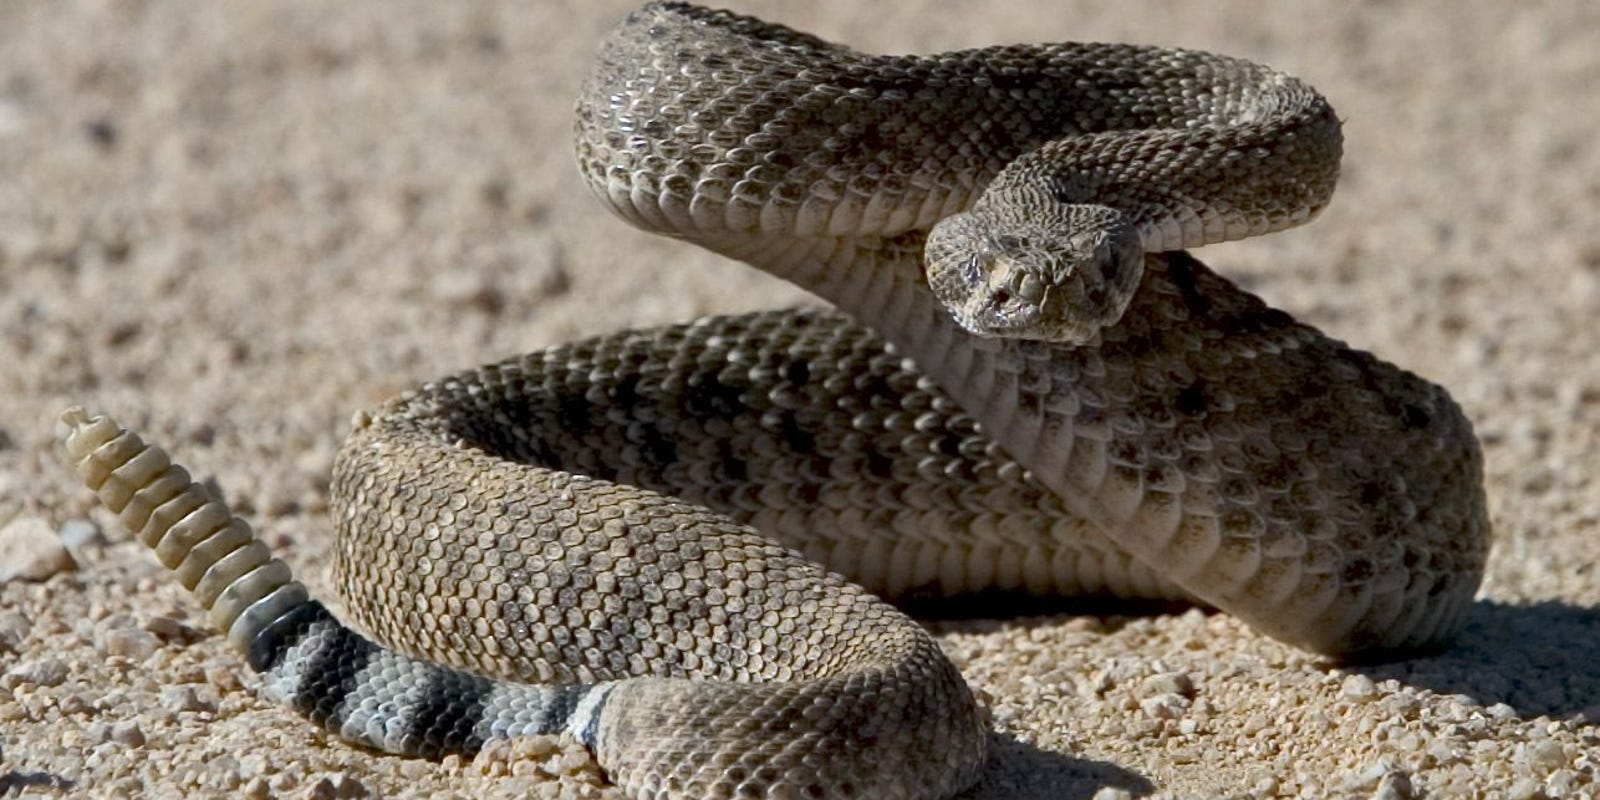 Picture of a Rattlesnake in the Desert